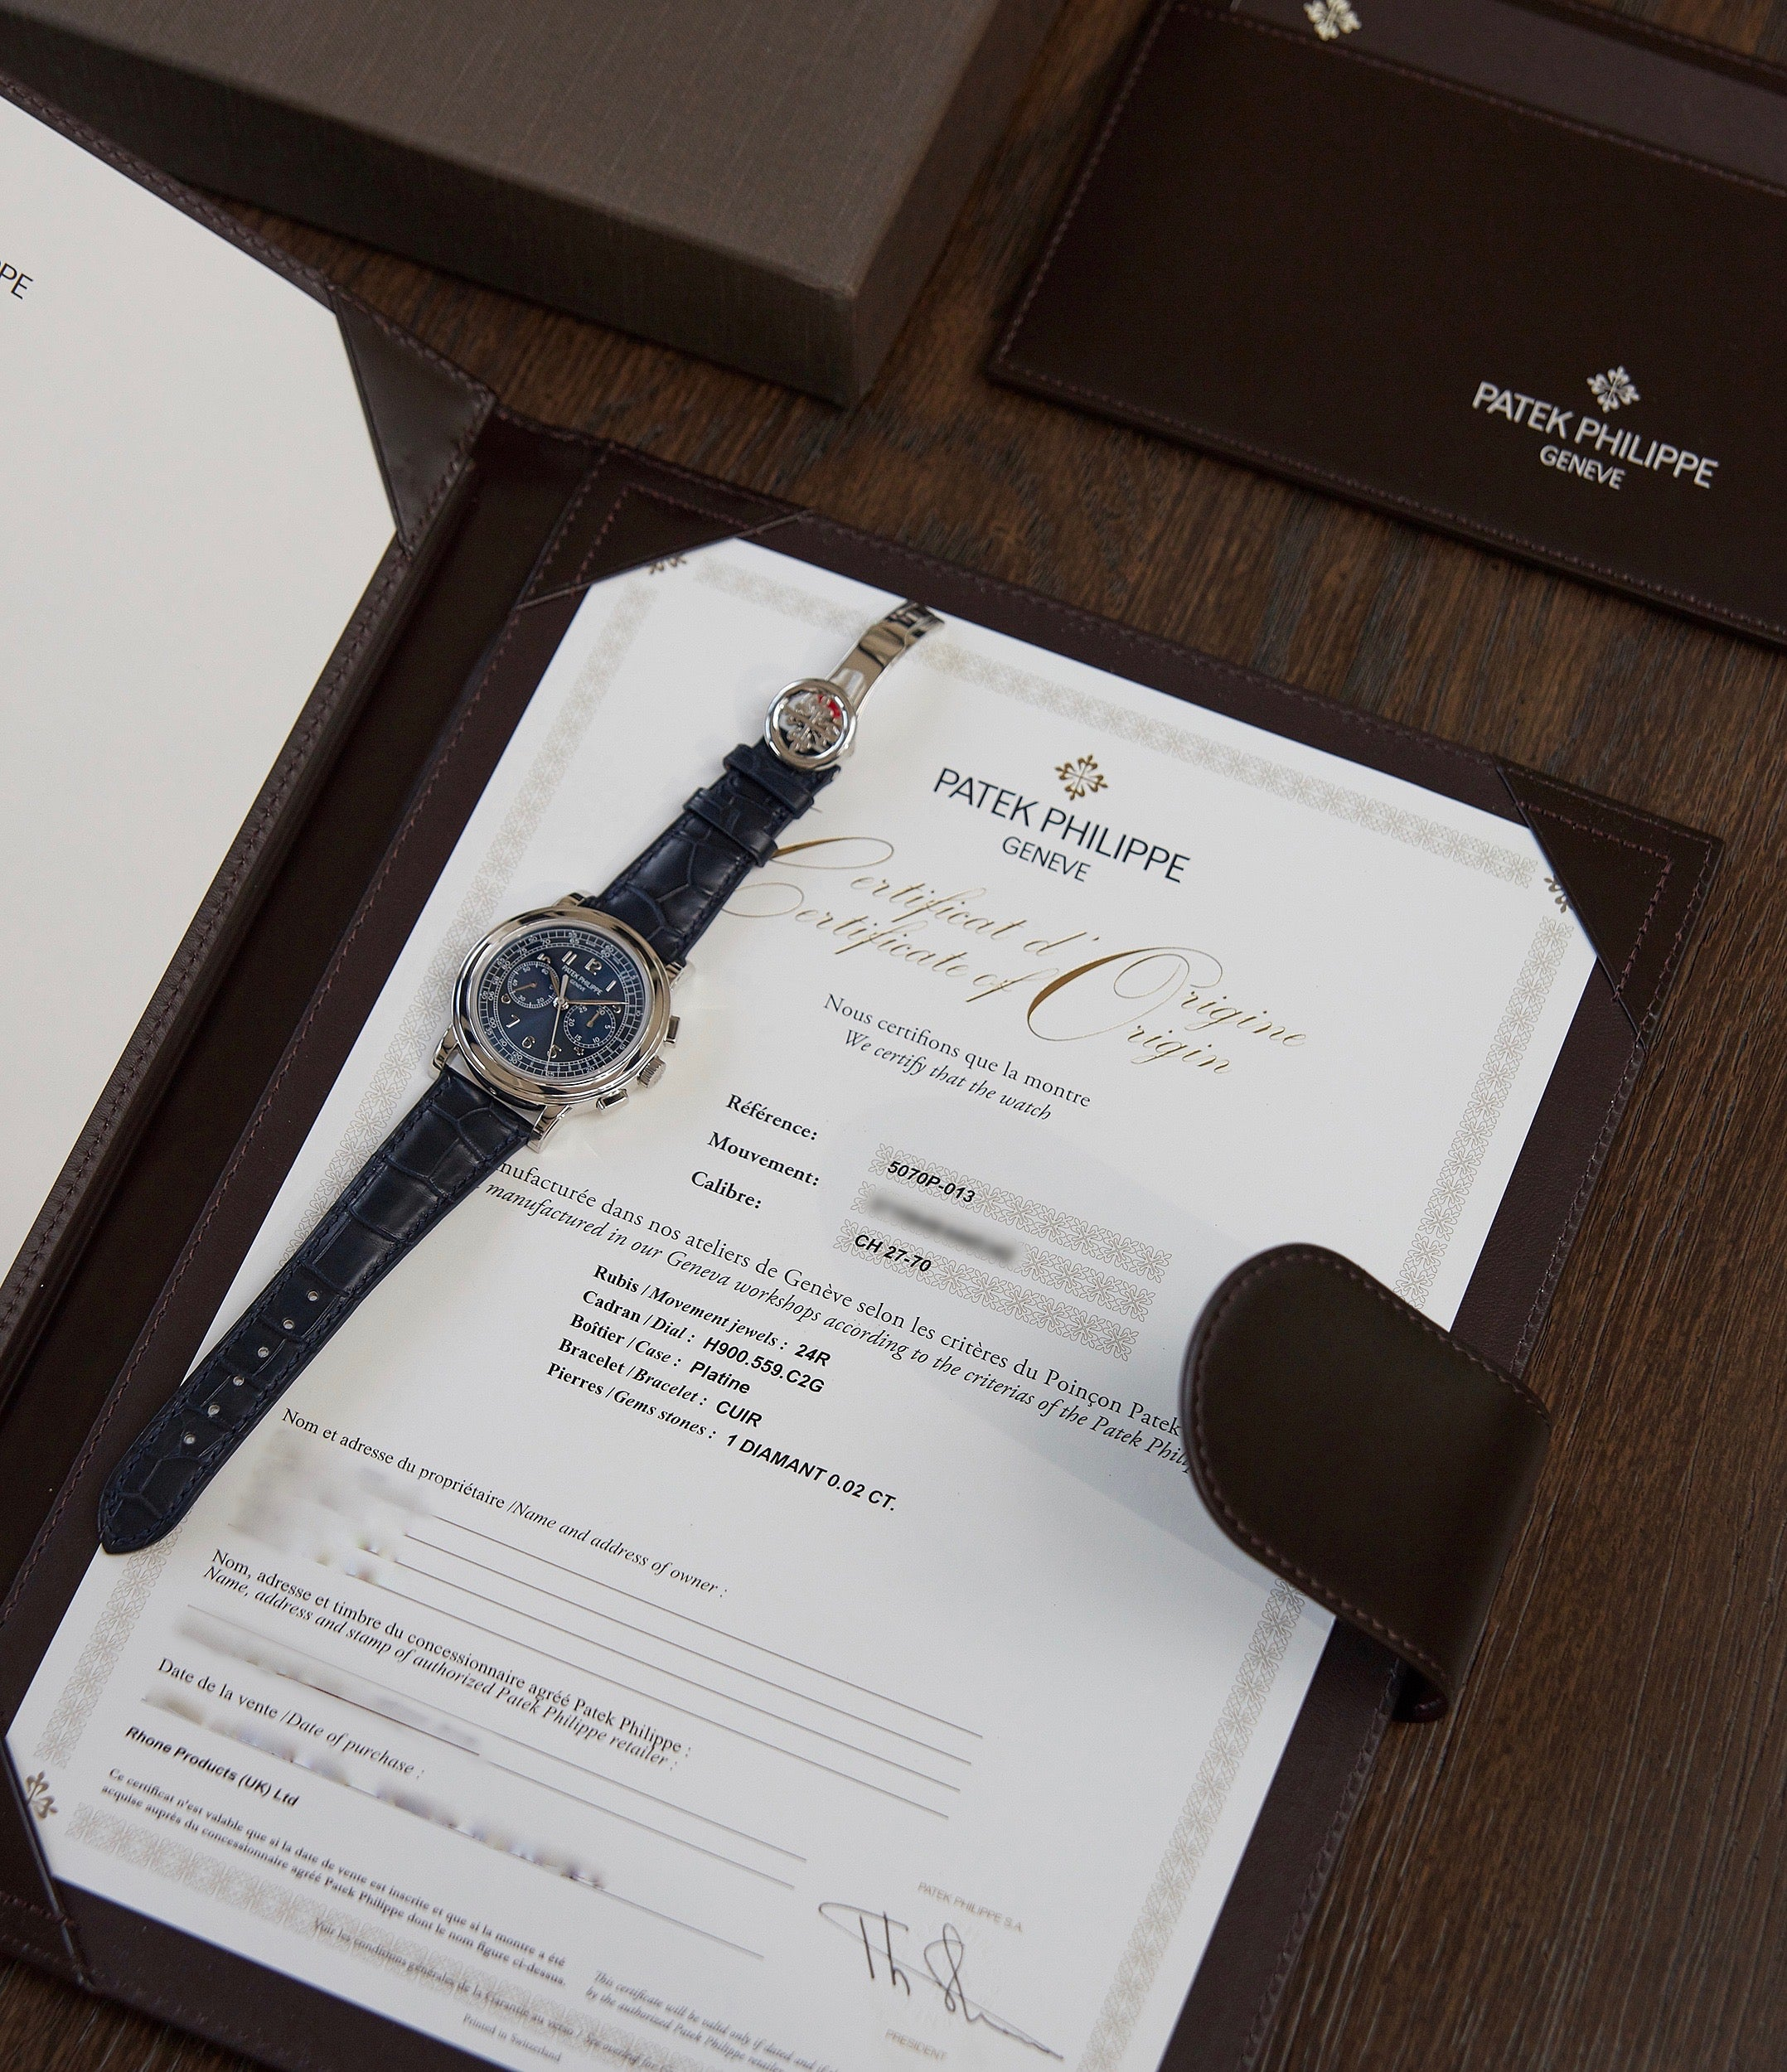 pre-owned watch Patek Philippe 5070P Saatchi Limited Edition blue dial platinum pre-owned watch for sale online A Collected Man London UK specialist of rare watches